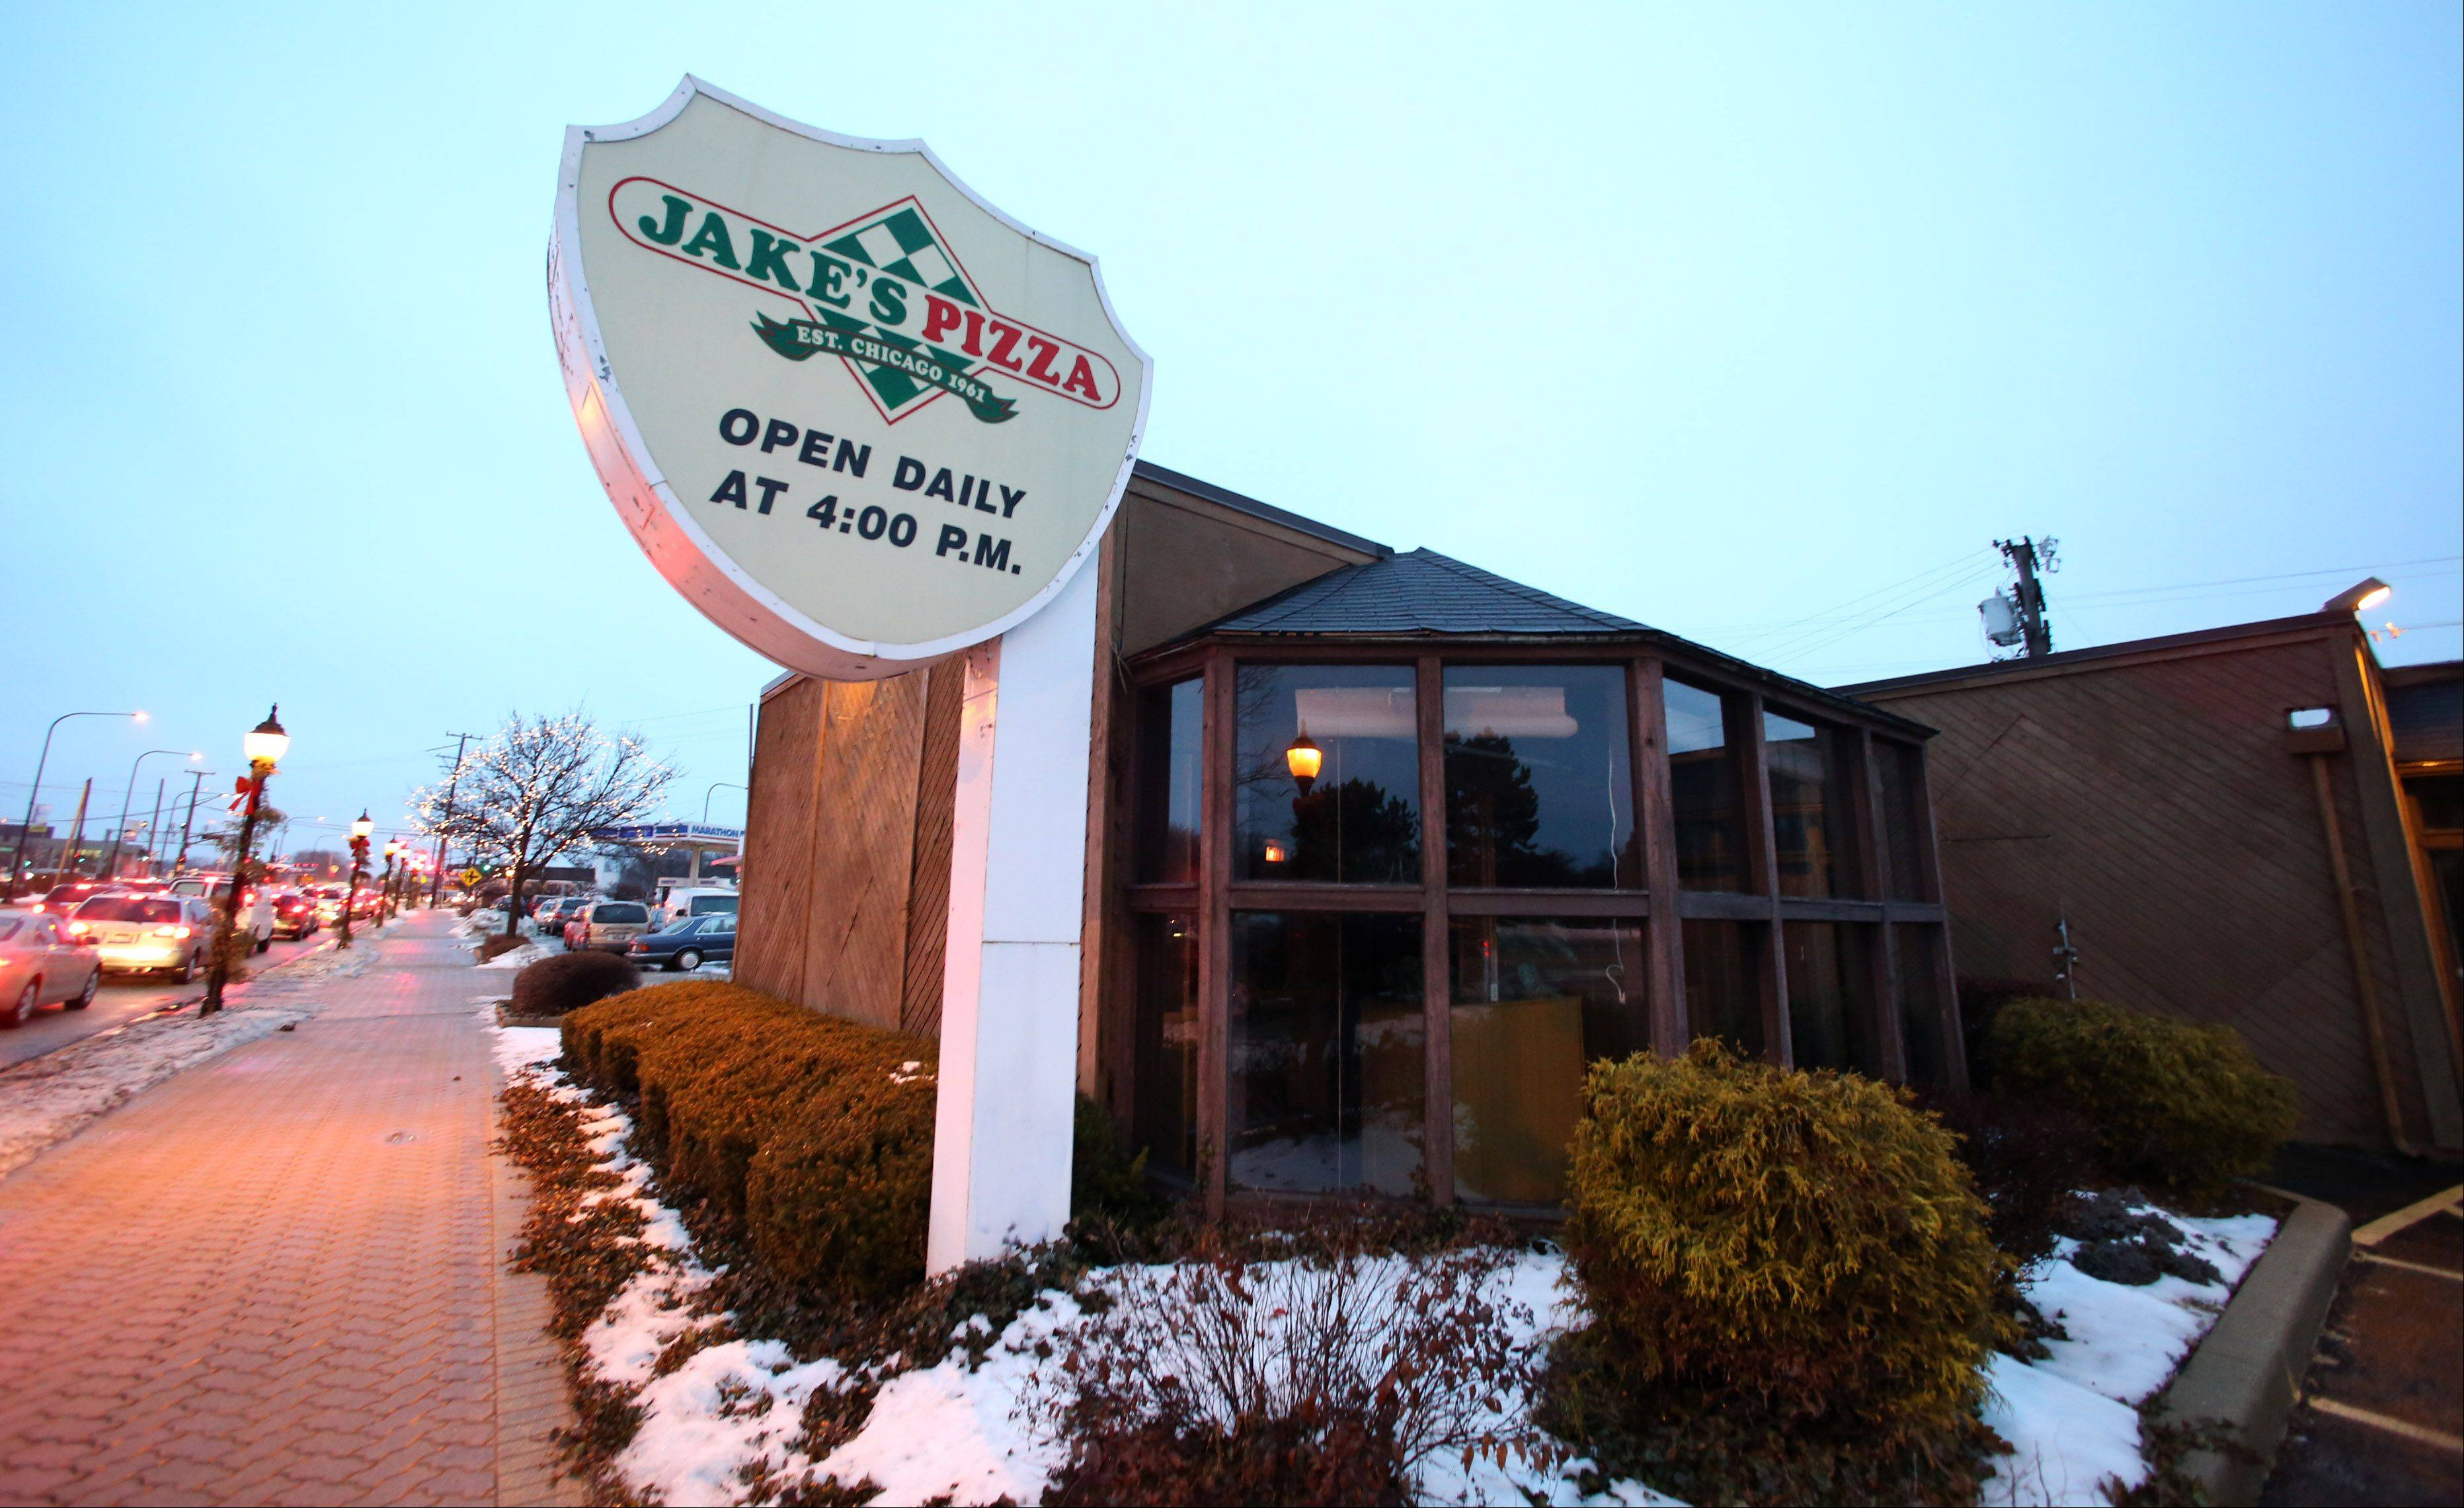 Jake's Pizza in Mount Prospect closed last summer, and now the liquor license it had will disappear with it.